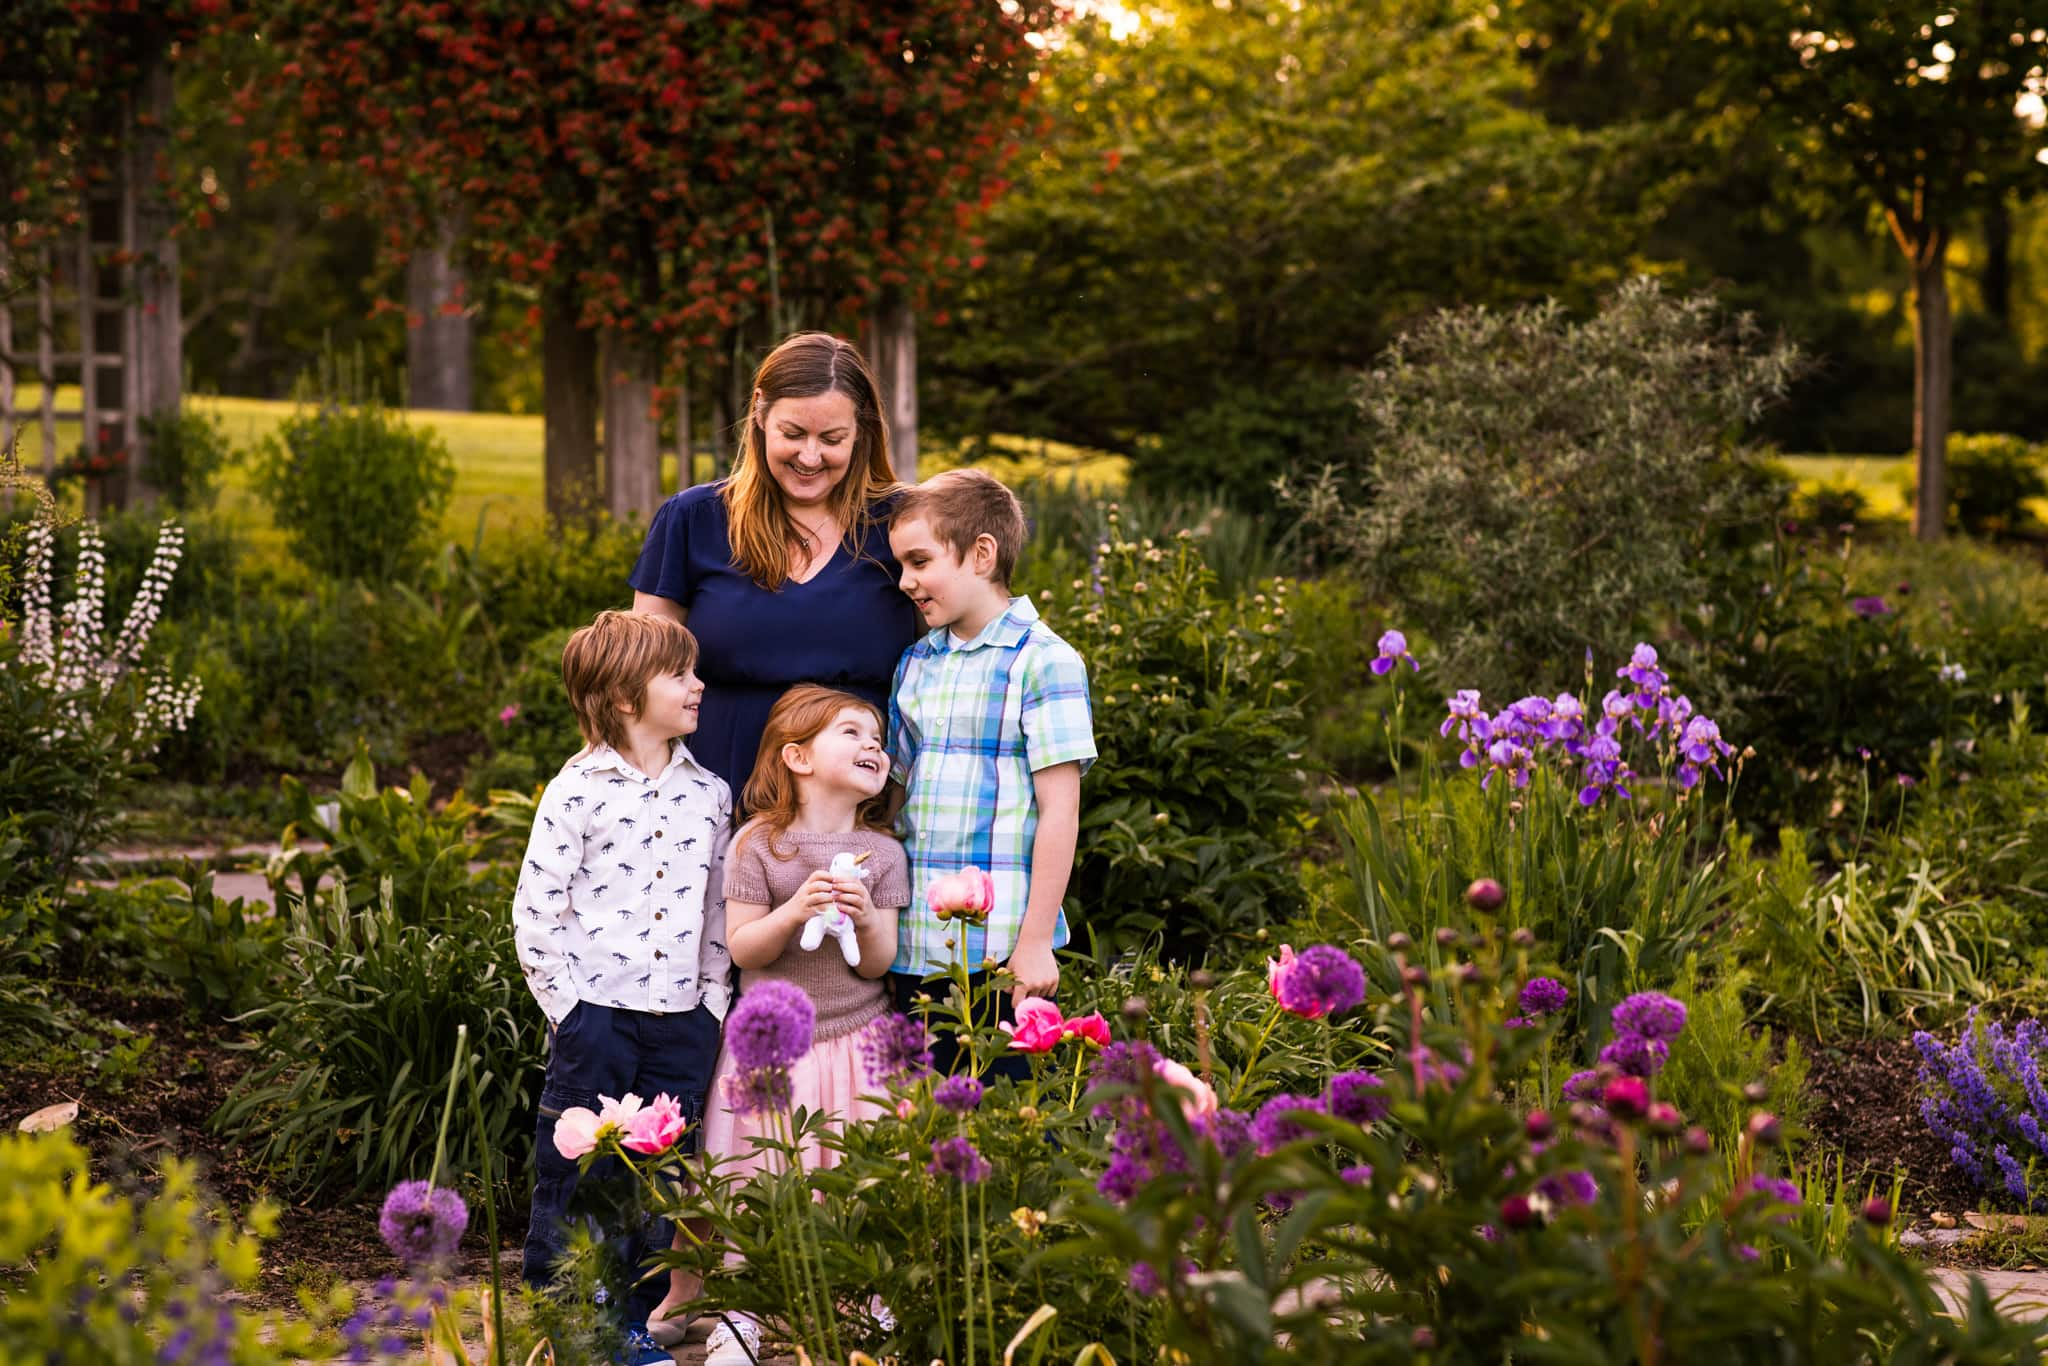 mom stands with 3 kids in garden flowers